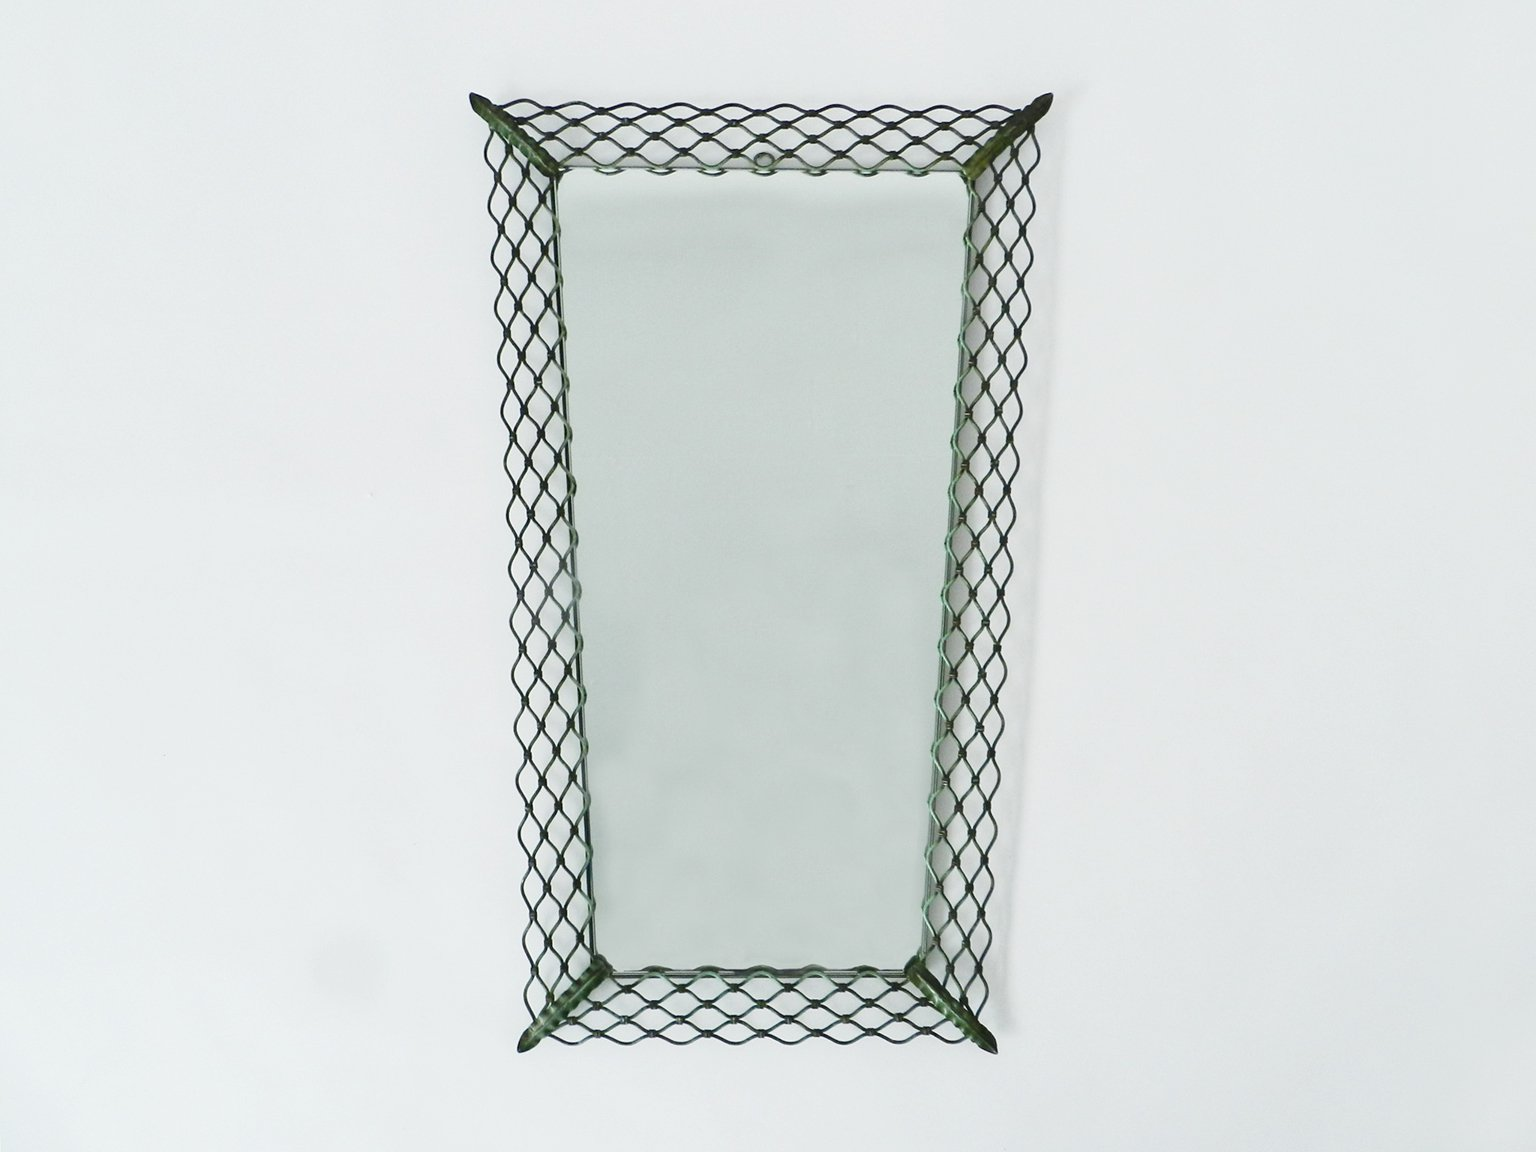 Vintage italian metal frame mirror for sale at pamono for Metal frame mirror